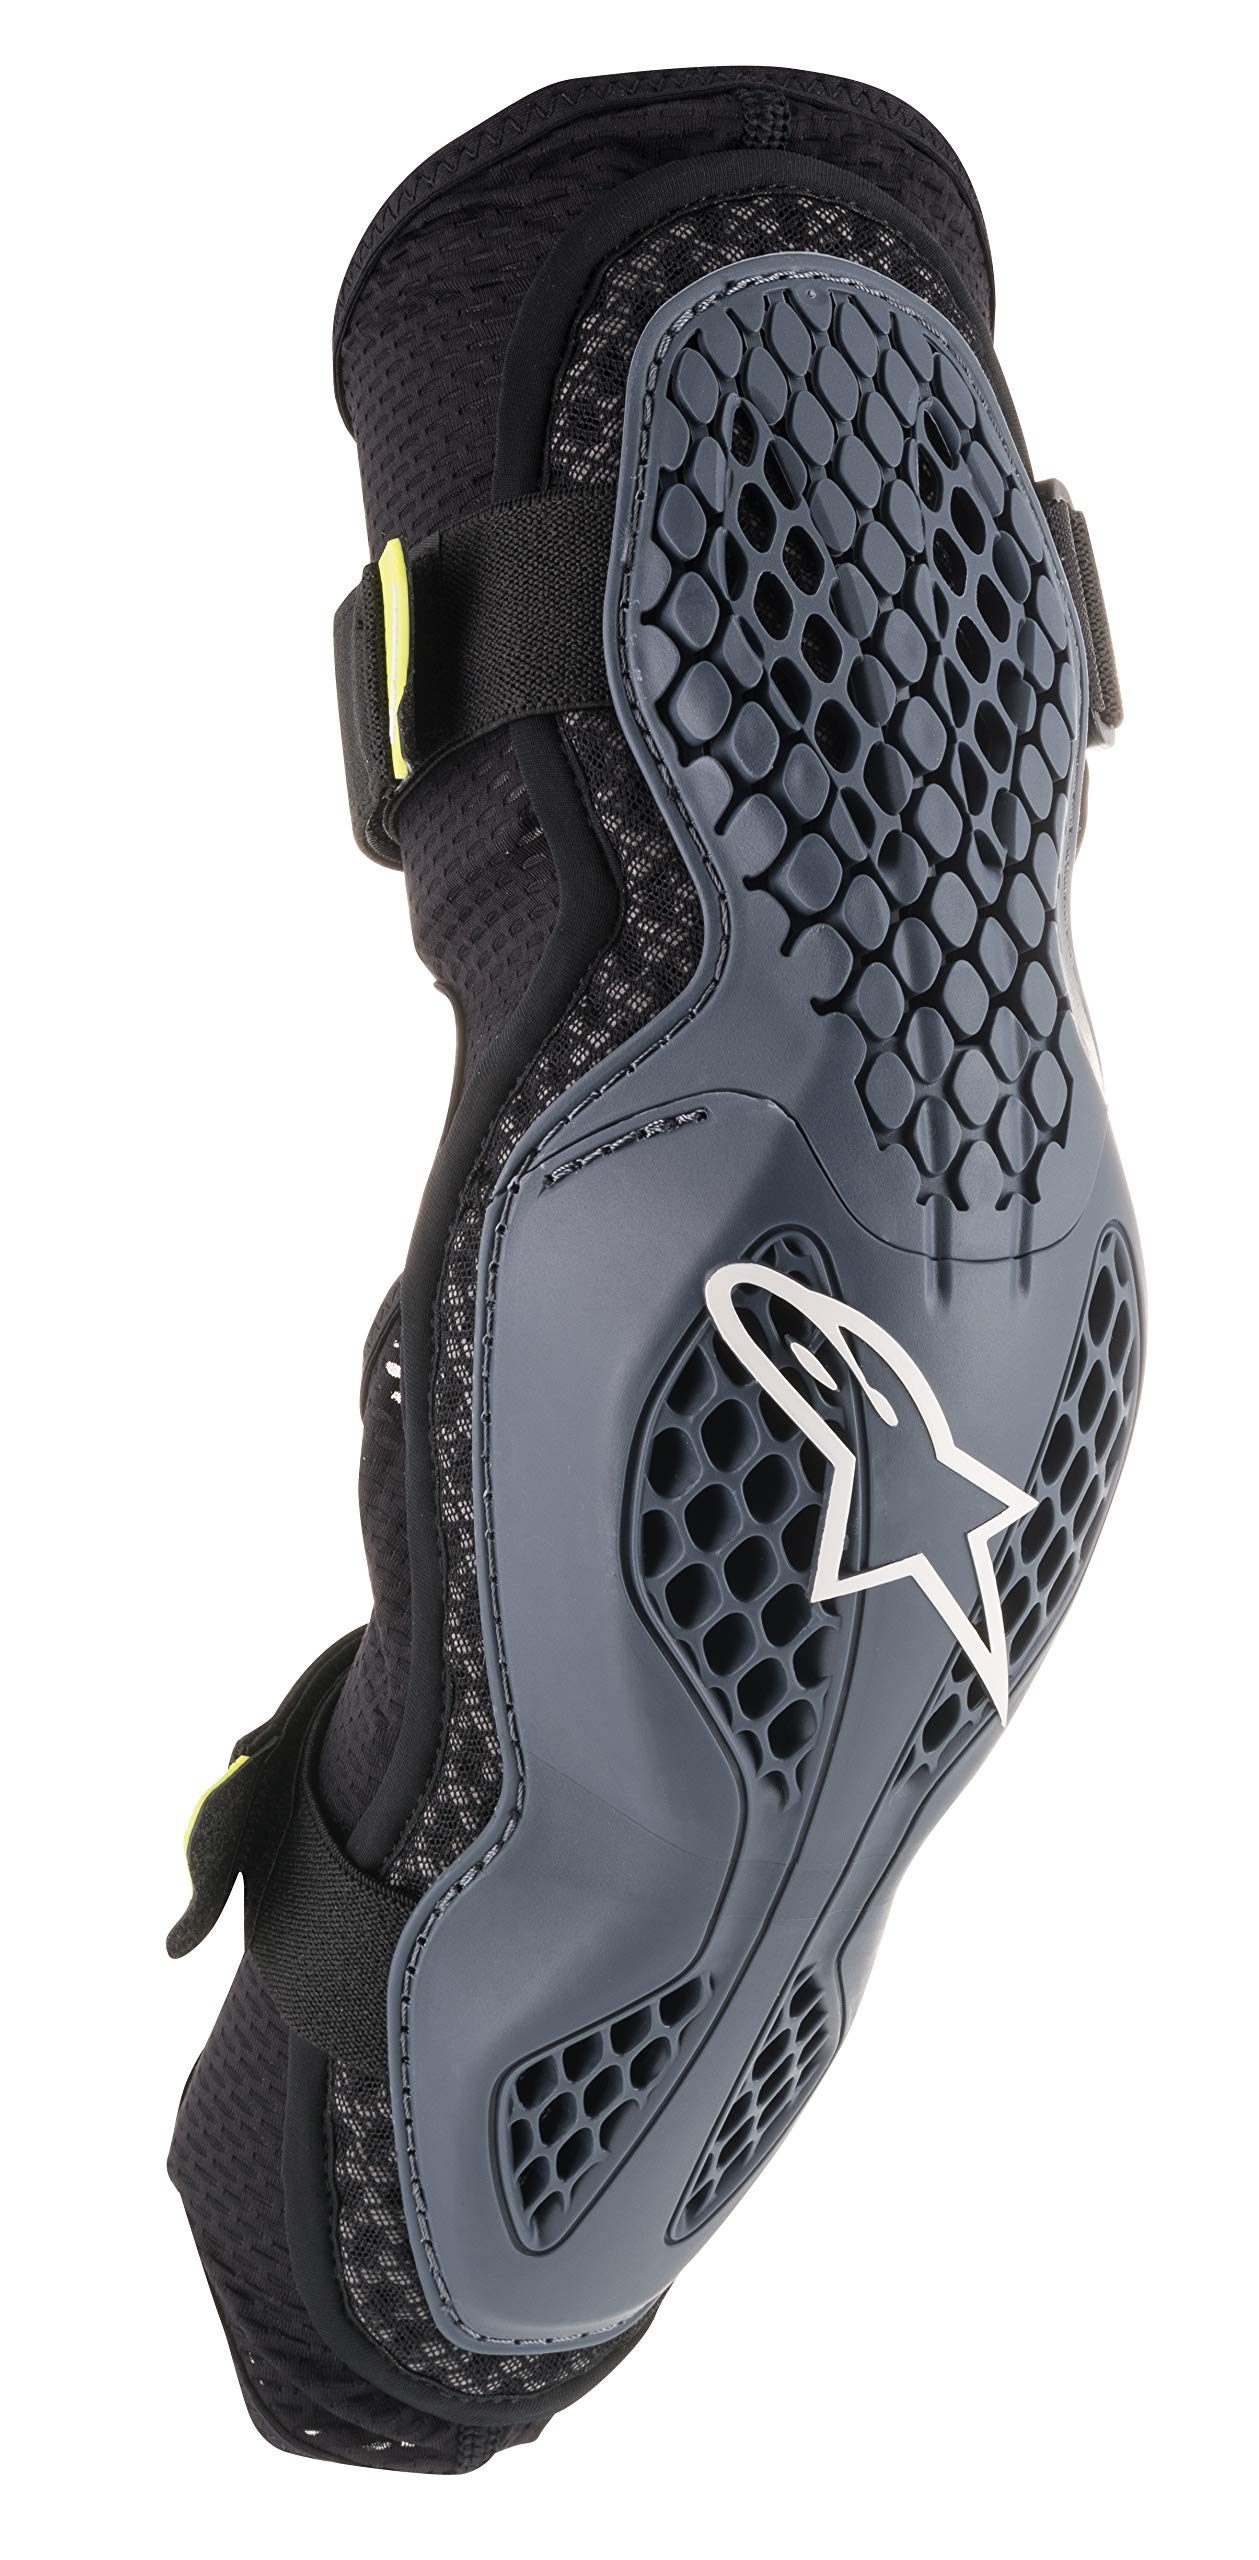 Sequence Off-Road Elbow Protector (Small/Medium, Anthracite Fluo Yellow) by Alpinestars